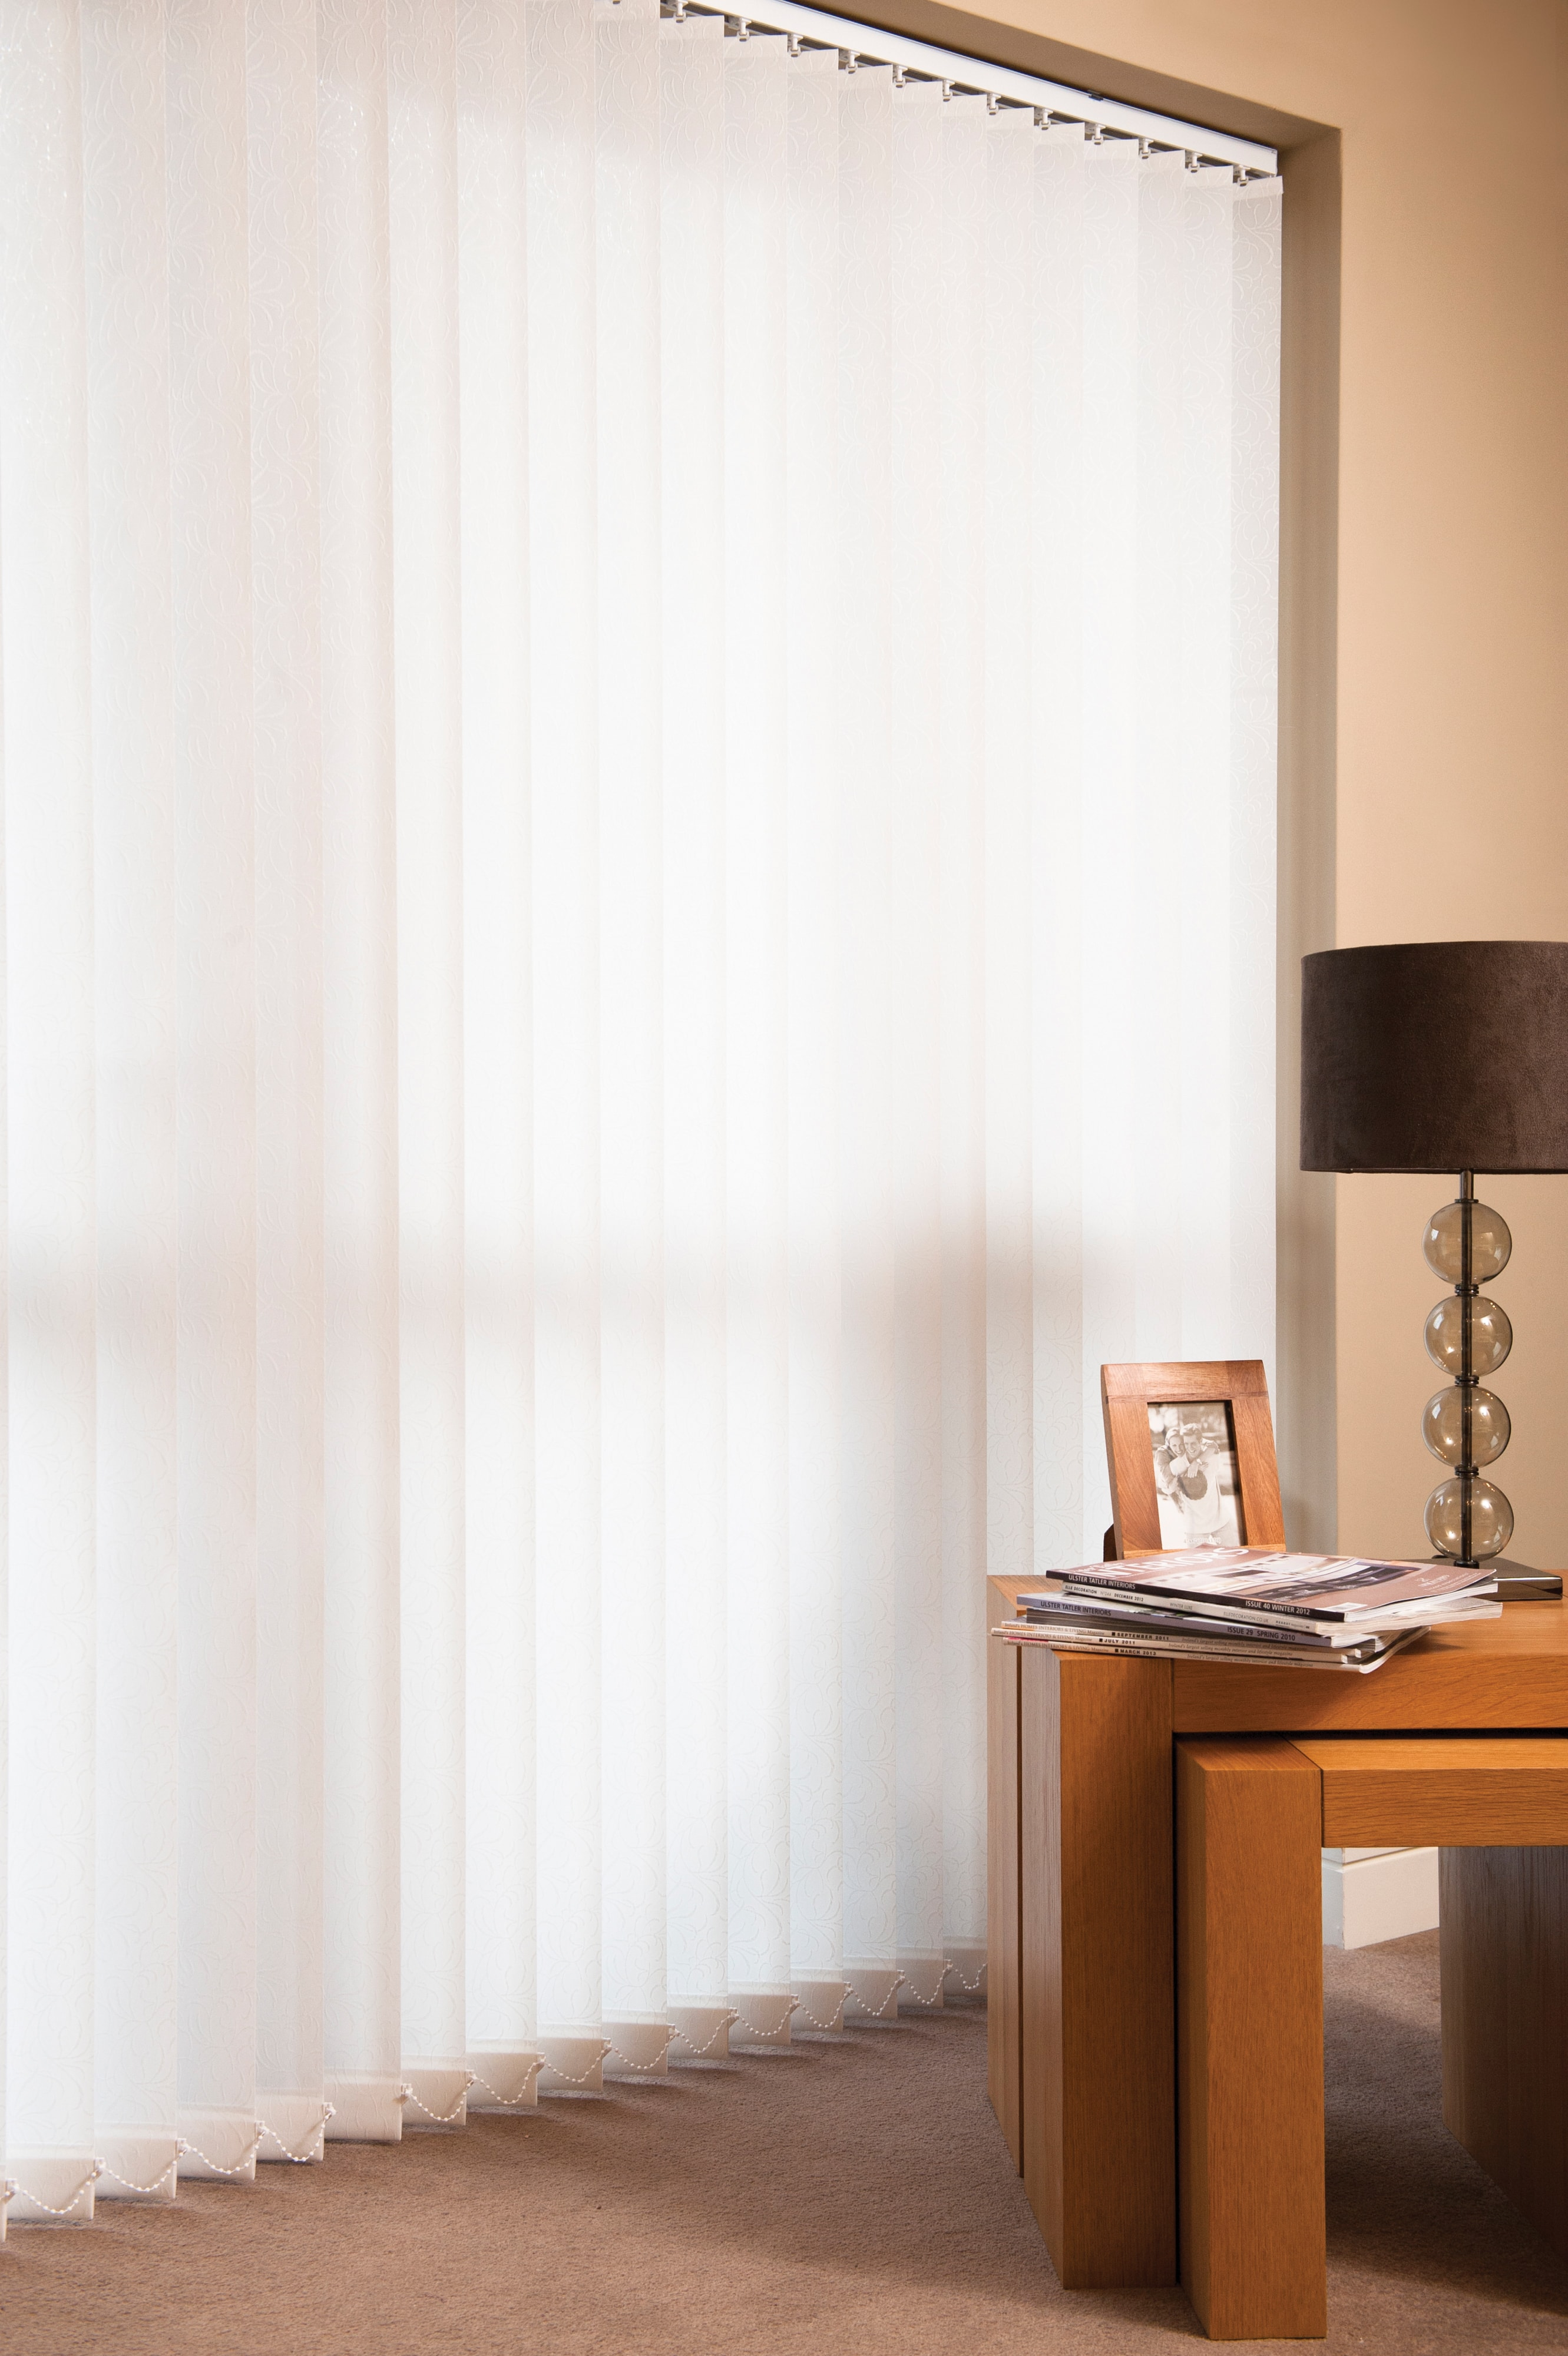 Bespoke vertical window blinds can be made to suit and